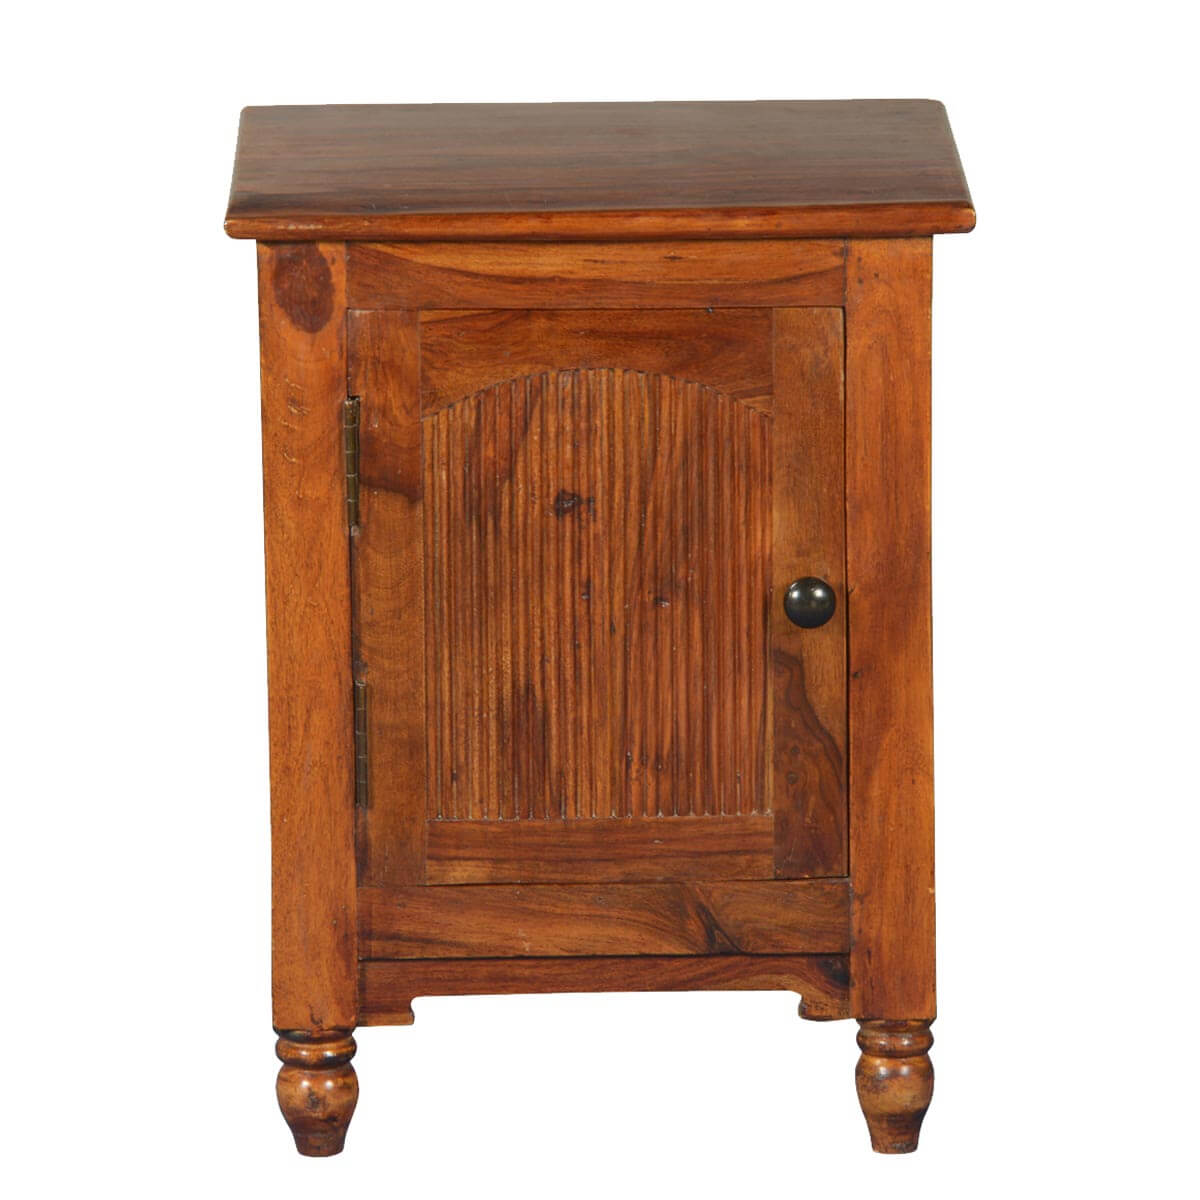 Rustic empire solid wood nightstand end table cabinet for Rustic wood nightstand